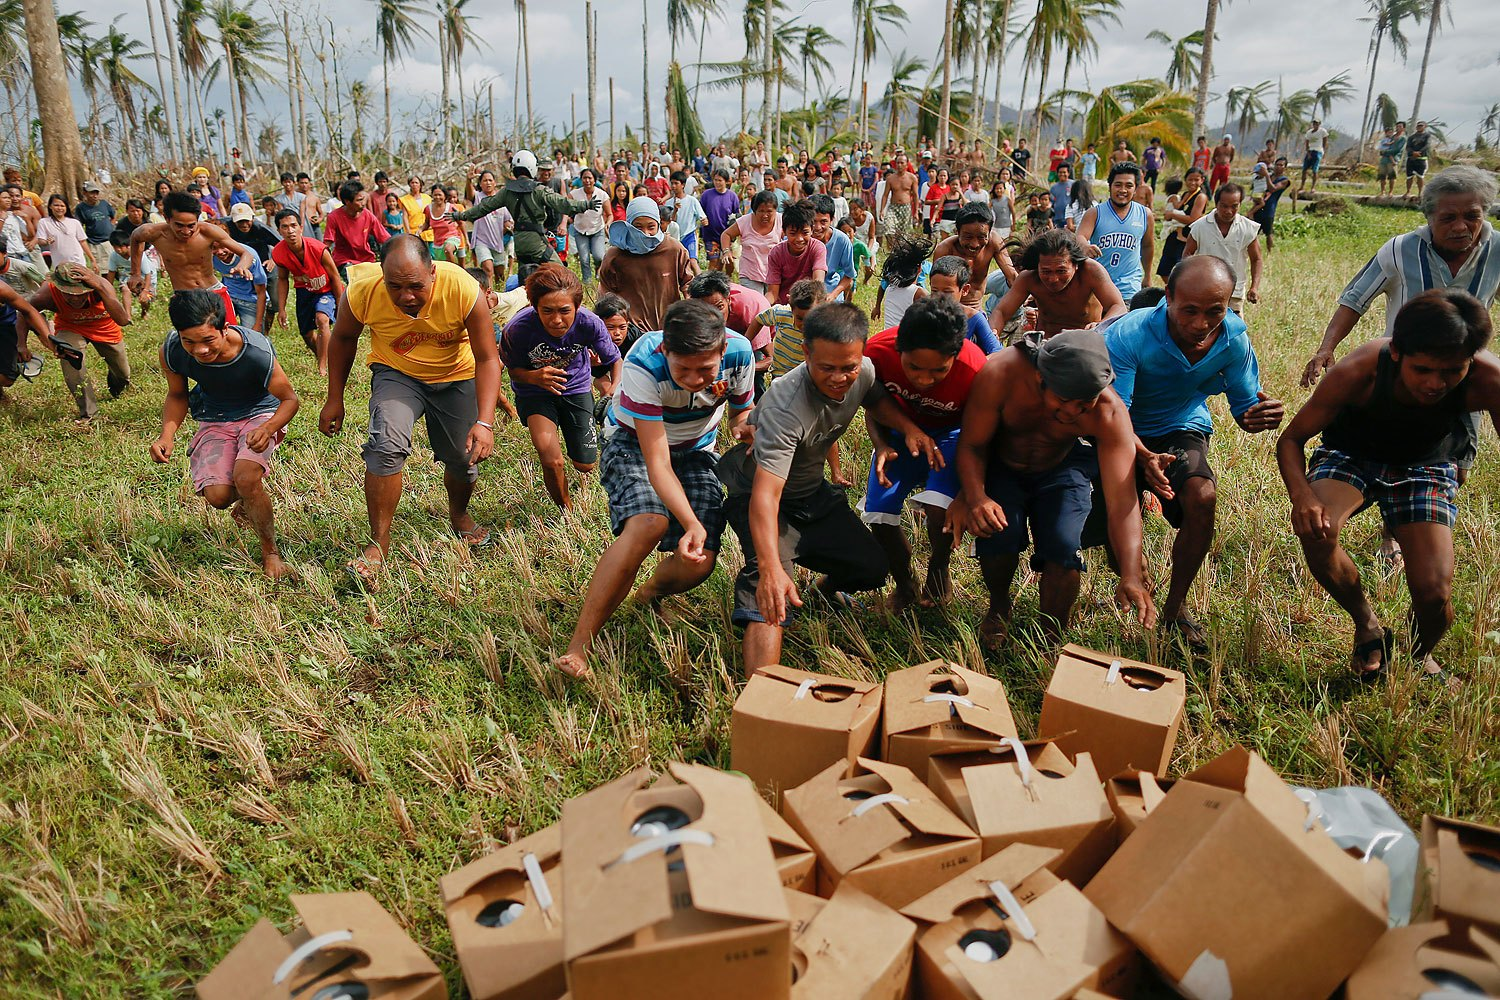 Survivors of Typhoon Haiyan rush to grab fresh water delivered by a U.S. military helicopter to their isolated village north of Tacloban, November 17, 2013.